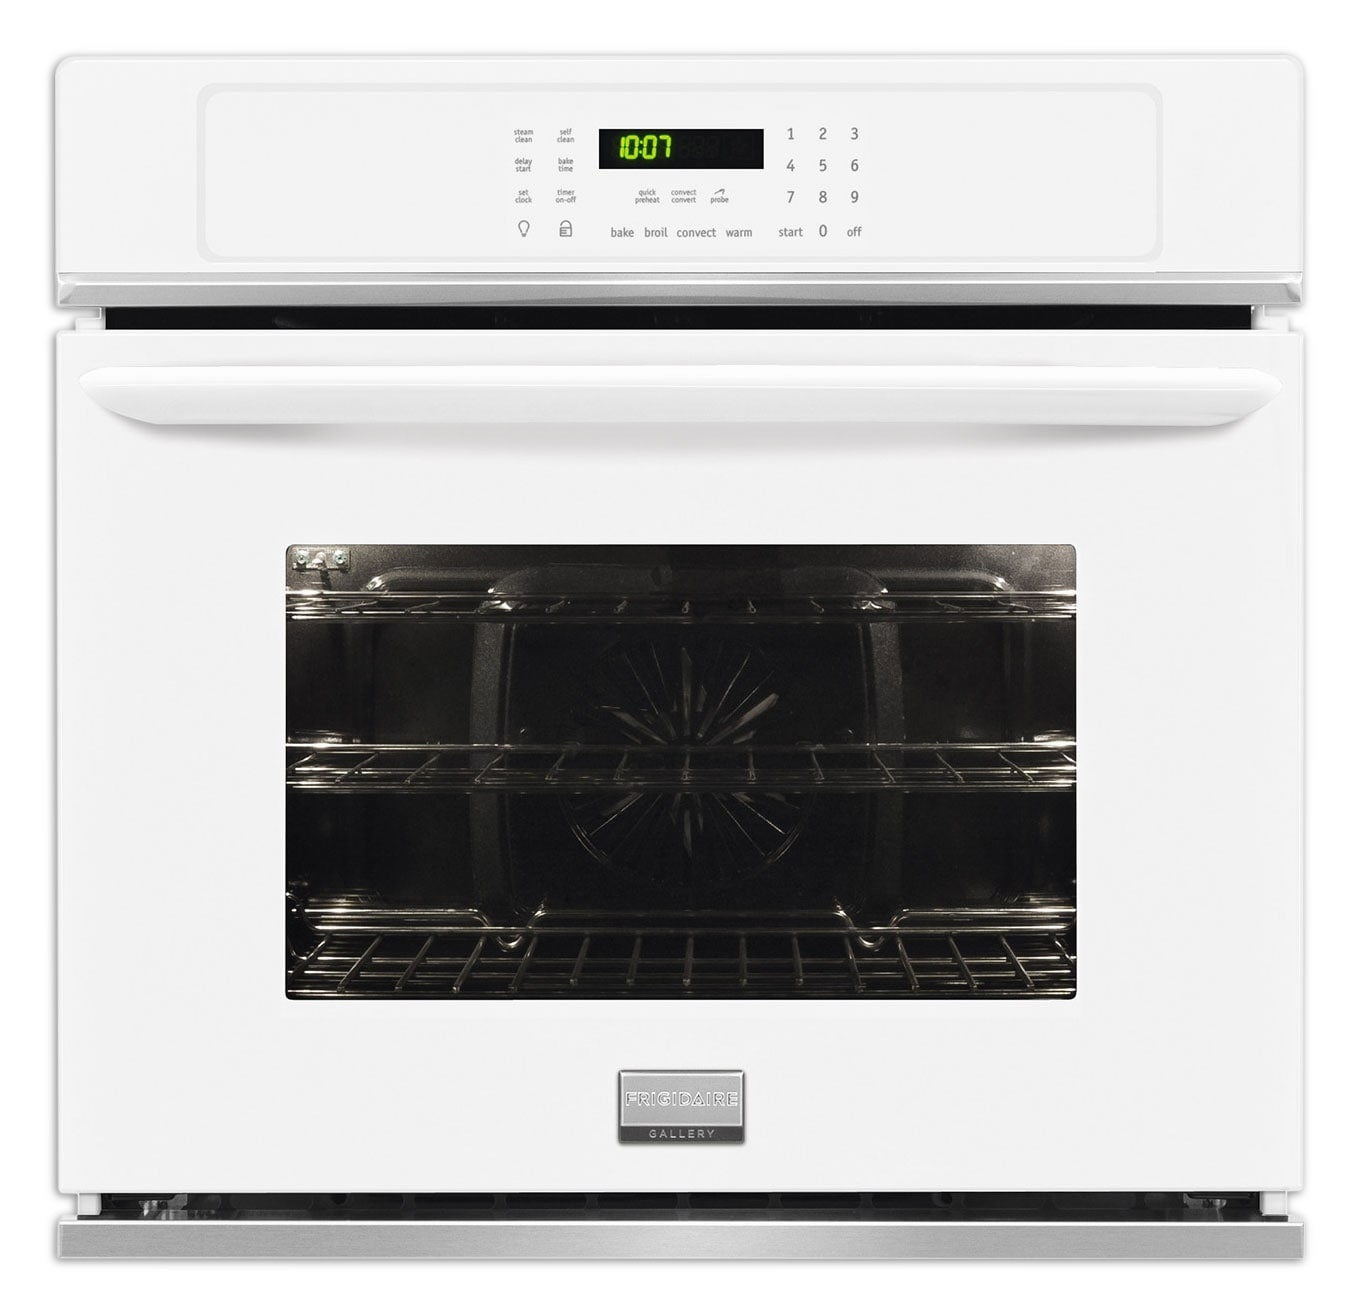 Cooking Products - Frigidaire Gallery White Convection Wall Oven (4.6 Cu. Ft.) - FGEW3065PW